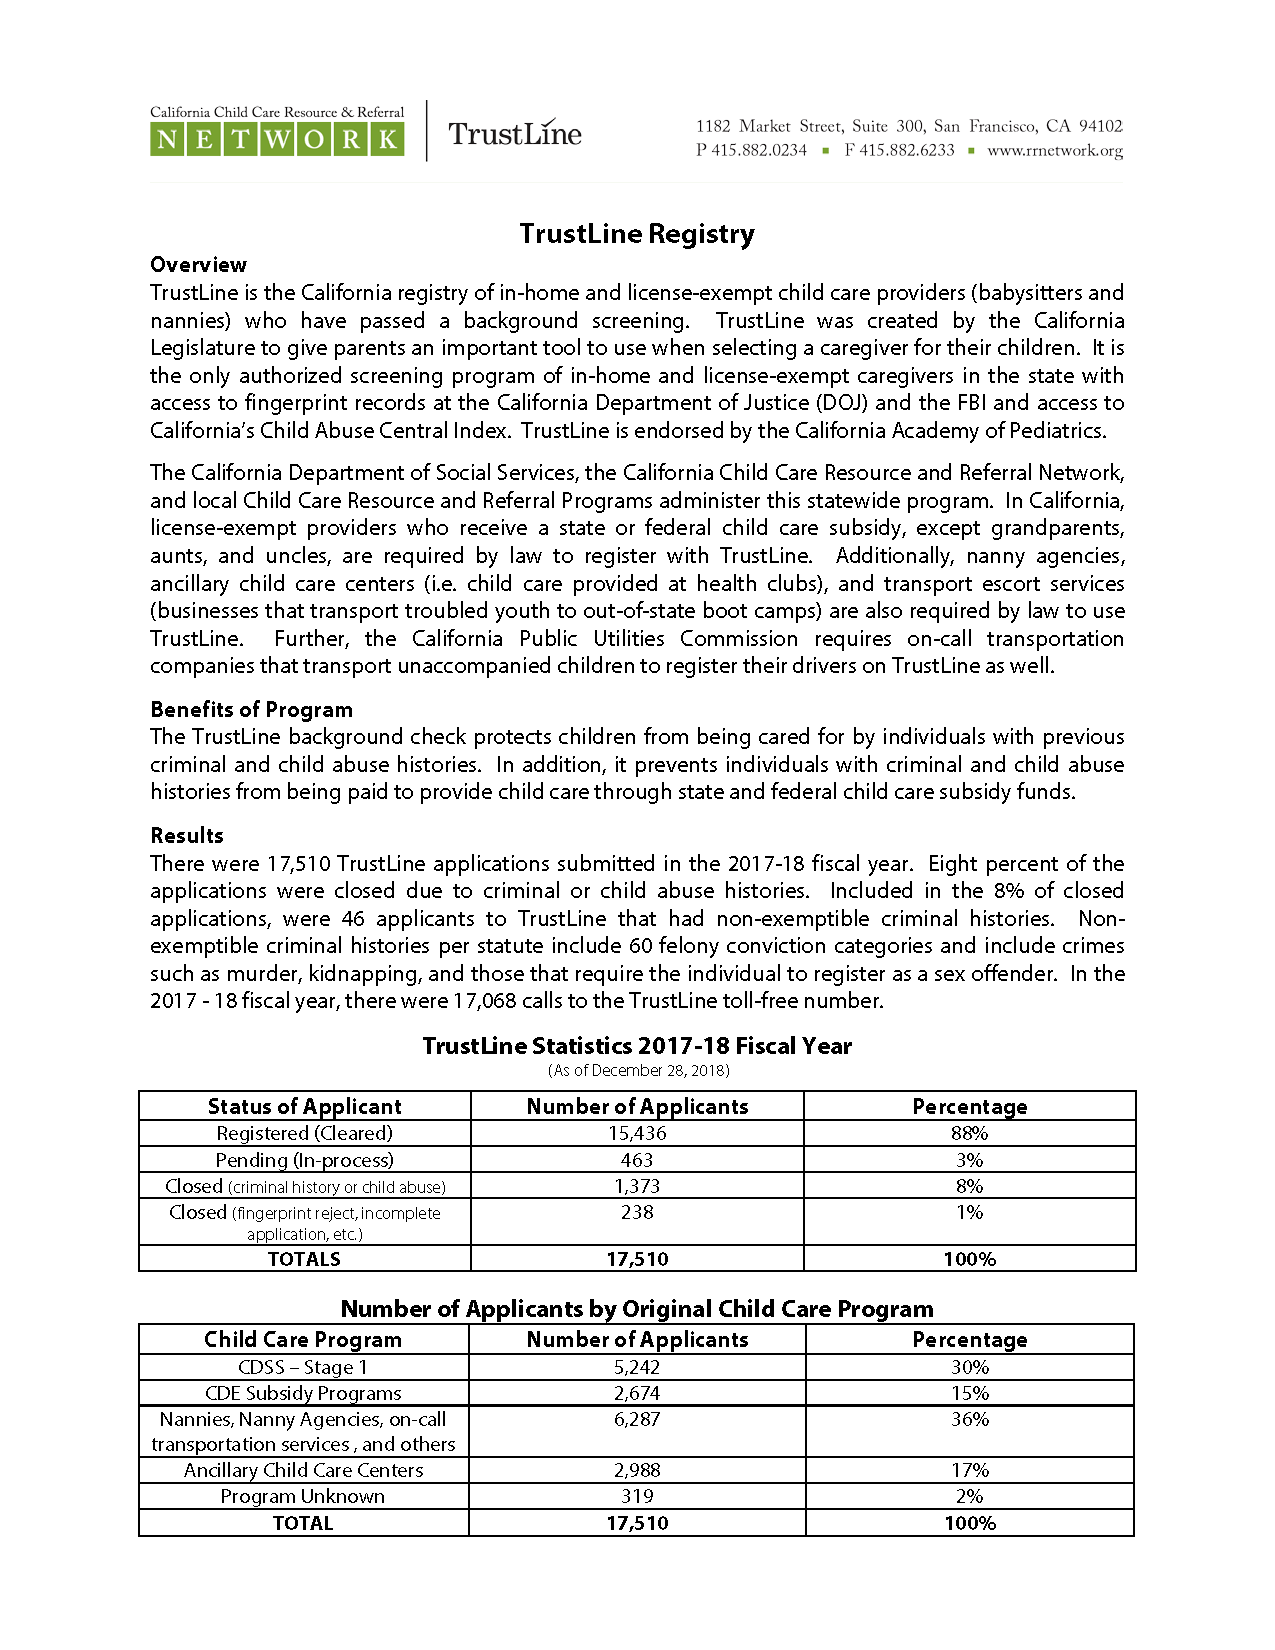 TL 19 Trustline Overview and Status Statistics for 2017-18 Fiscal Year